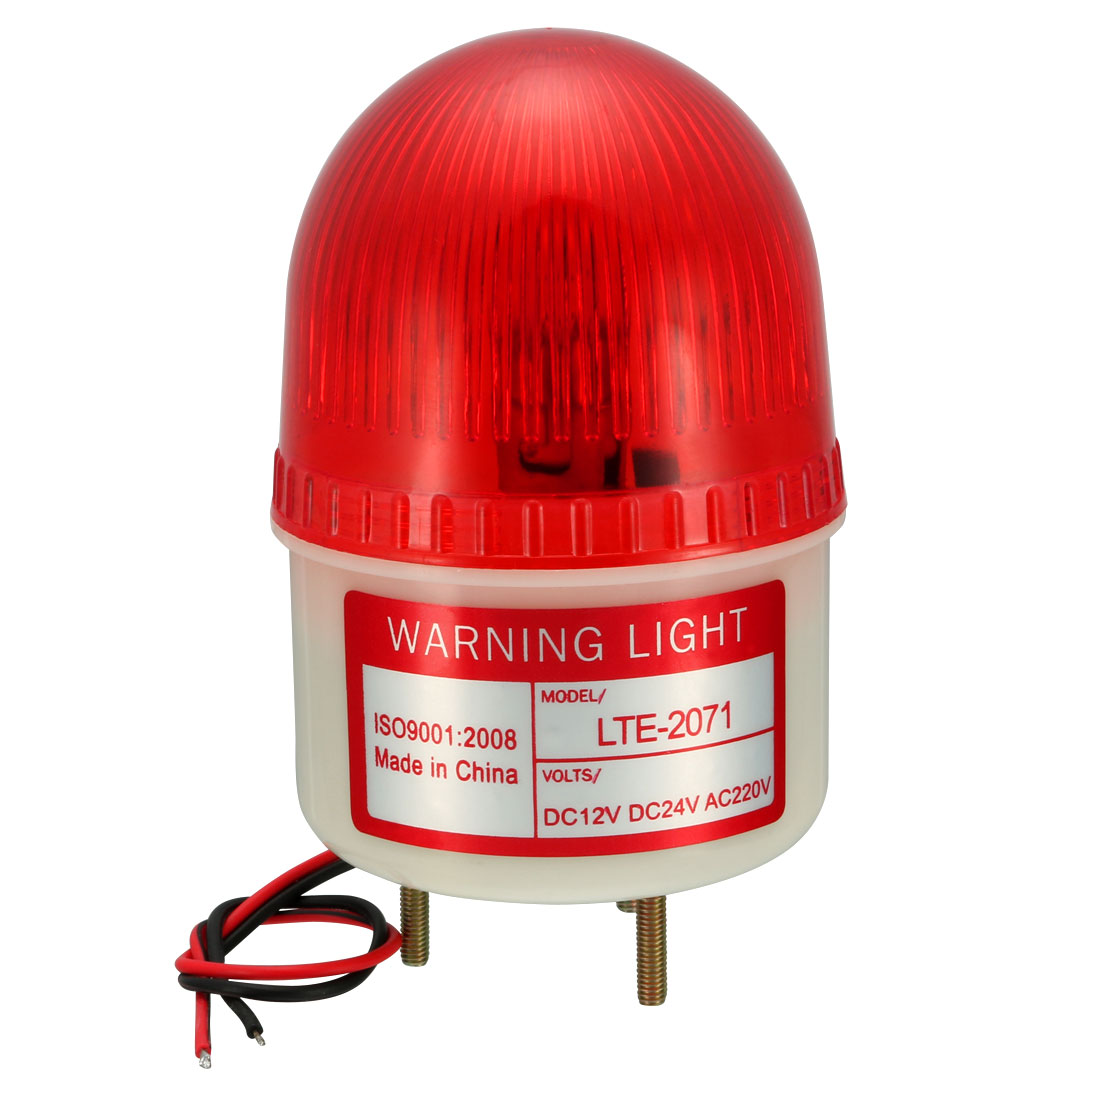 Warning Light Bulb Rotating Flash Signal Tower Lamp DC 24V Red LTE-2071